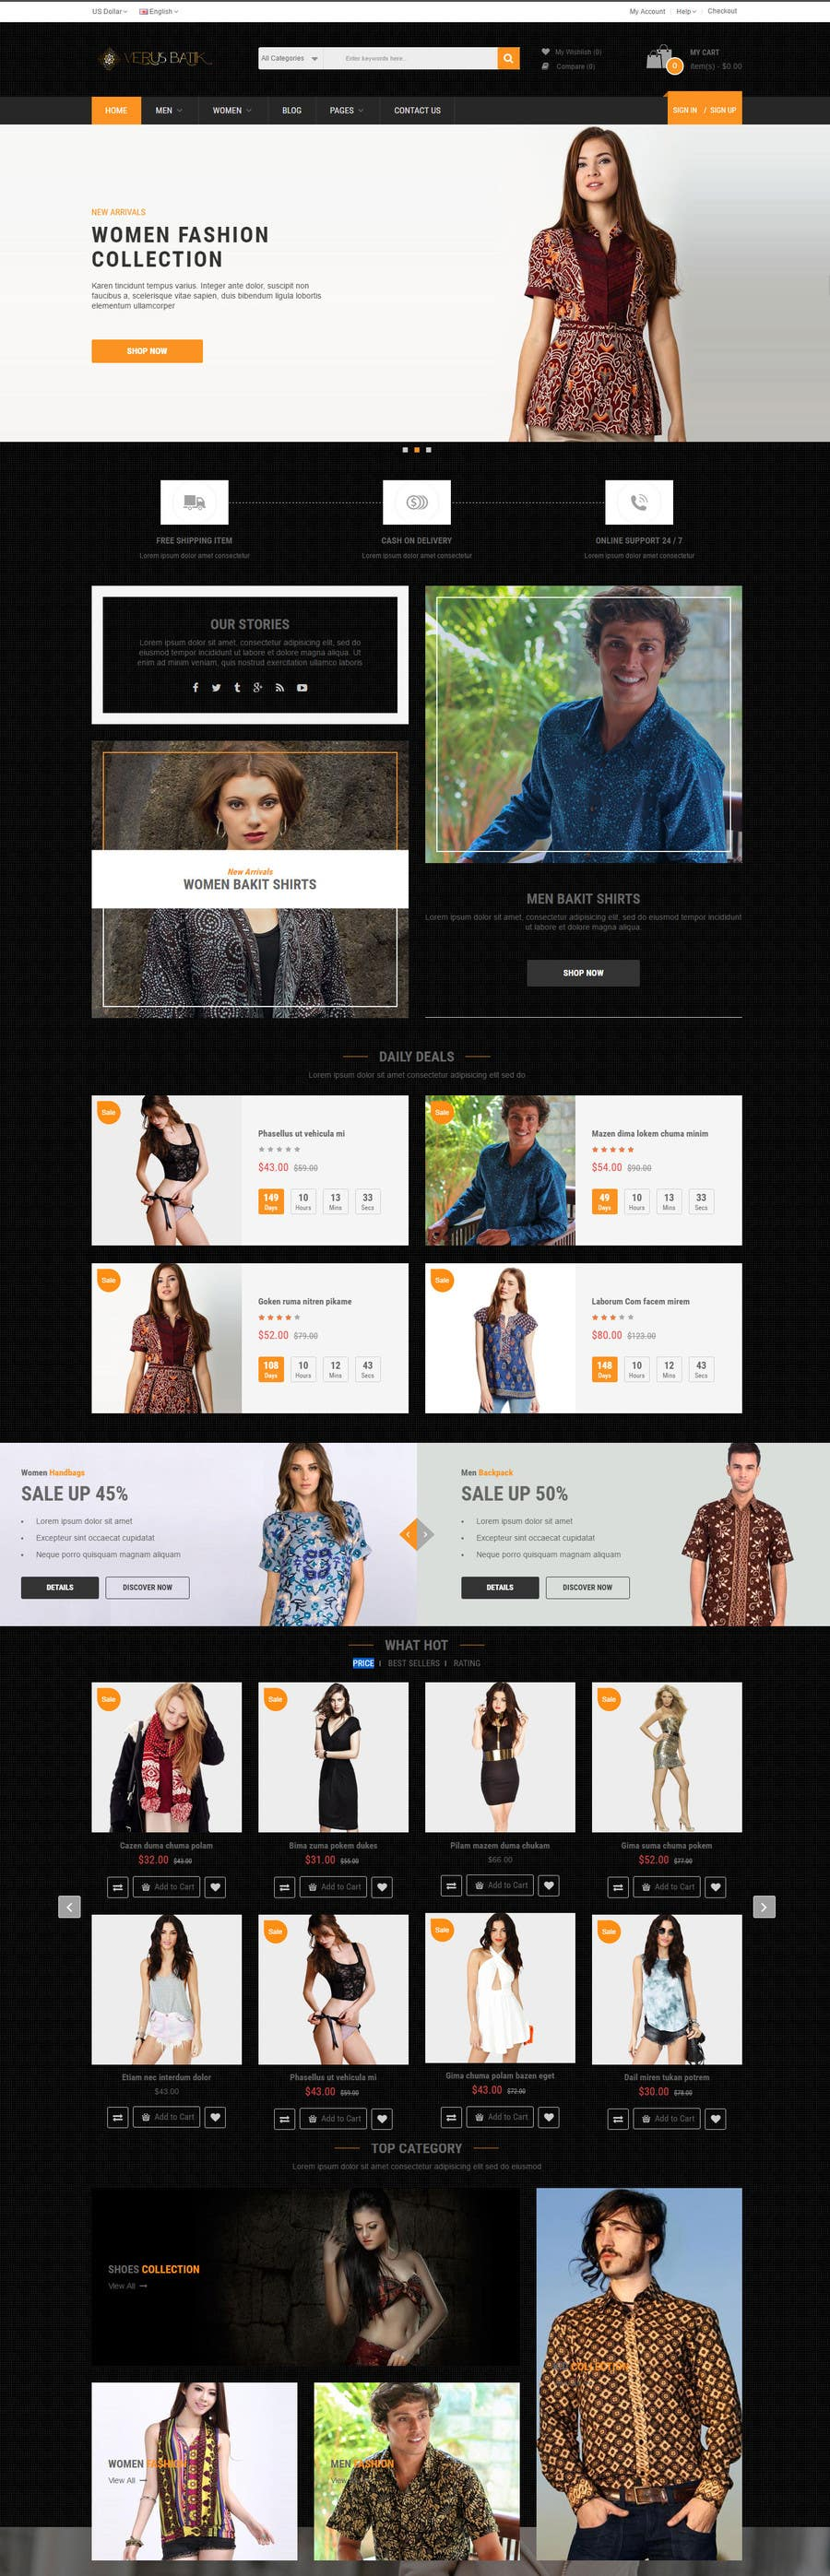 How to make an online clothing store